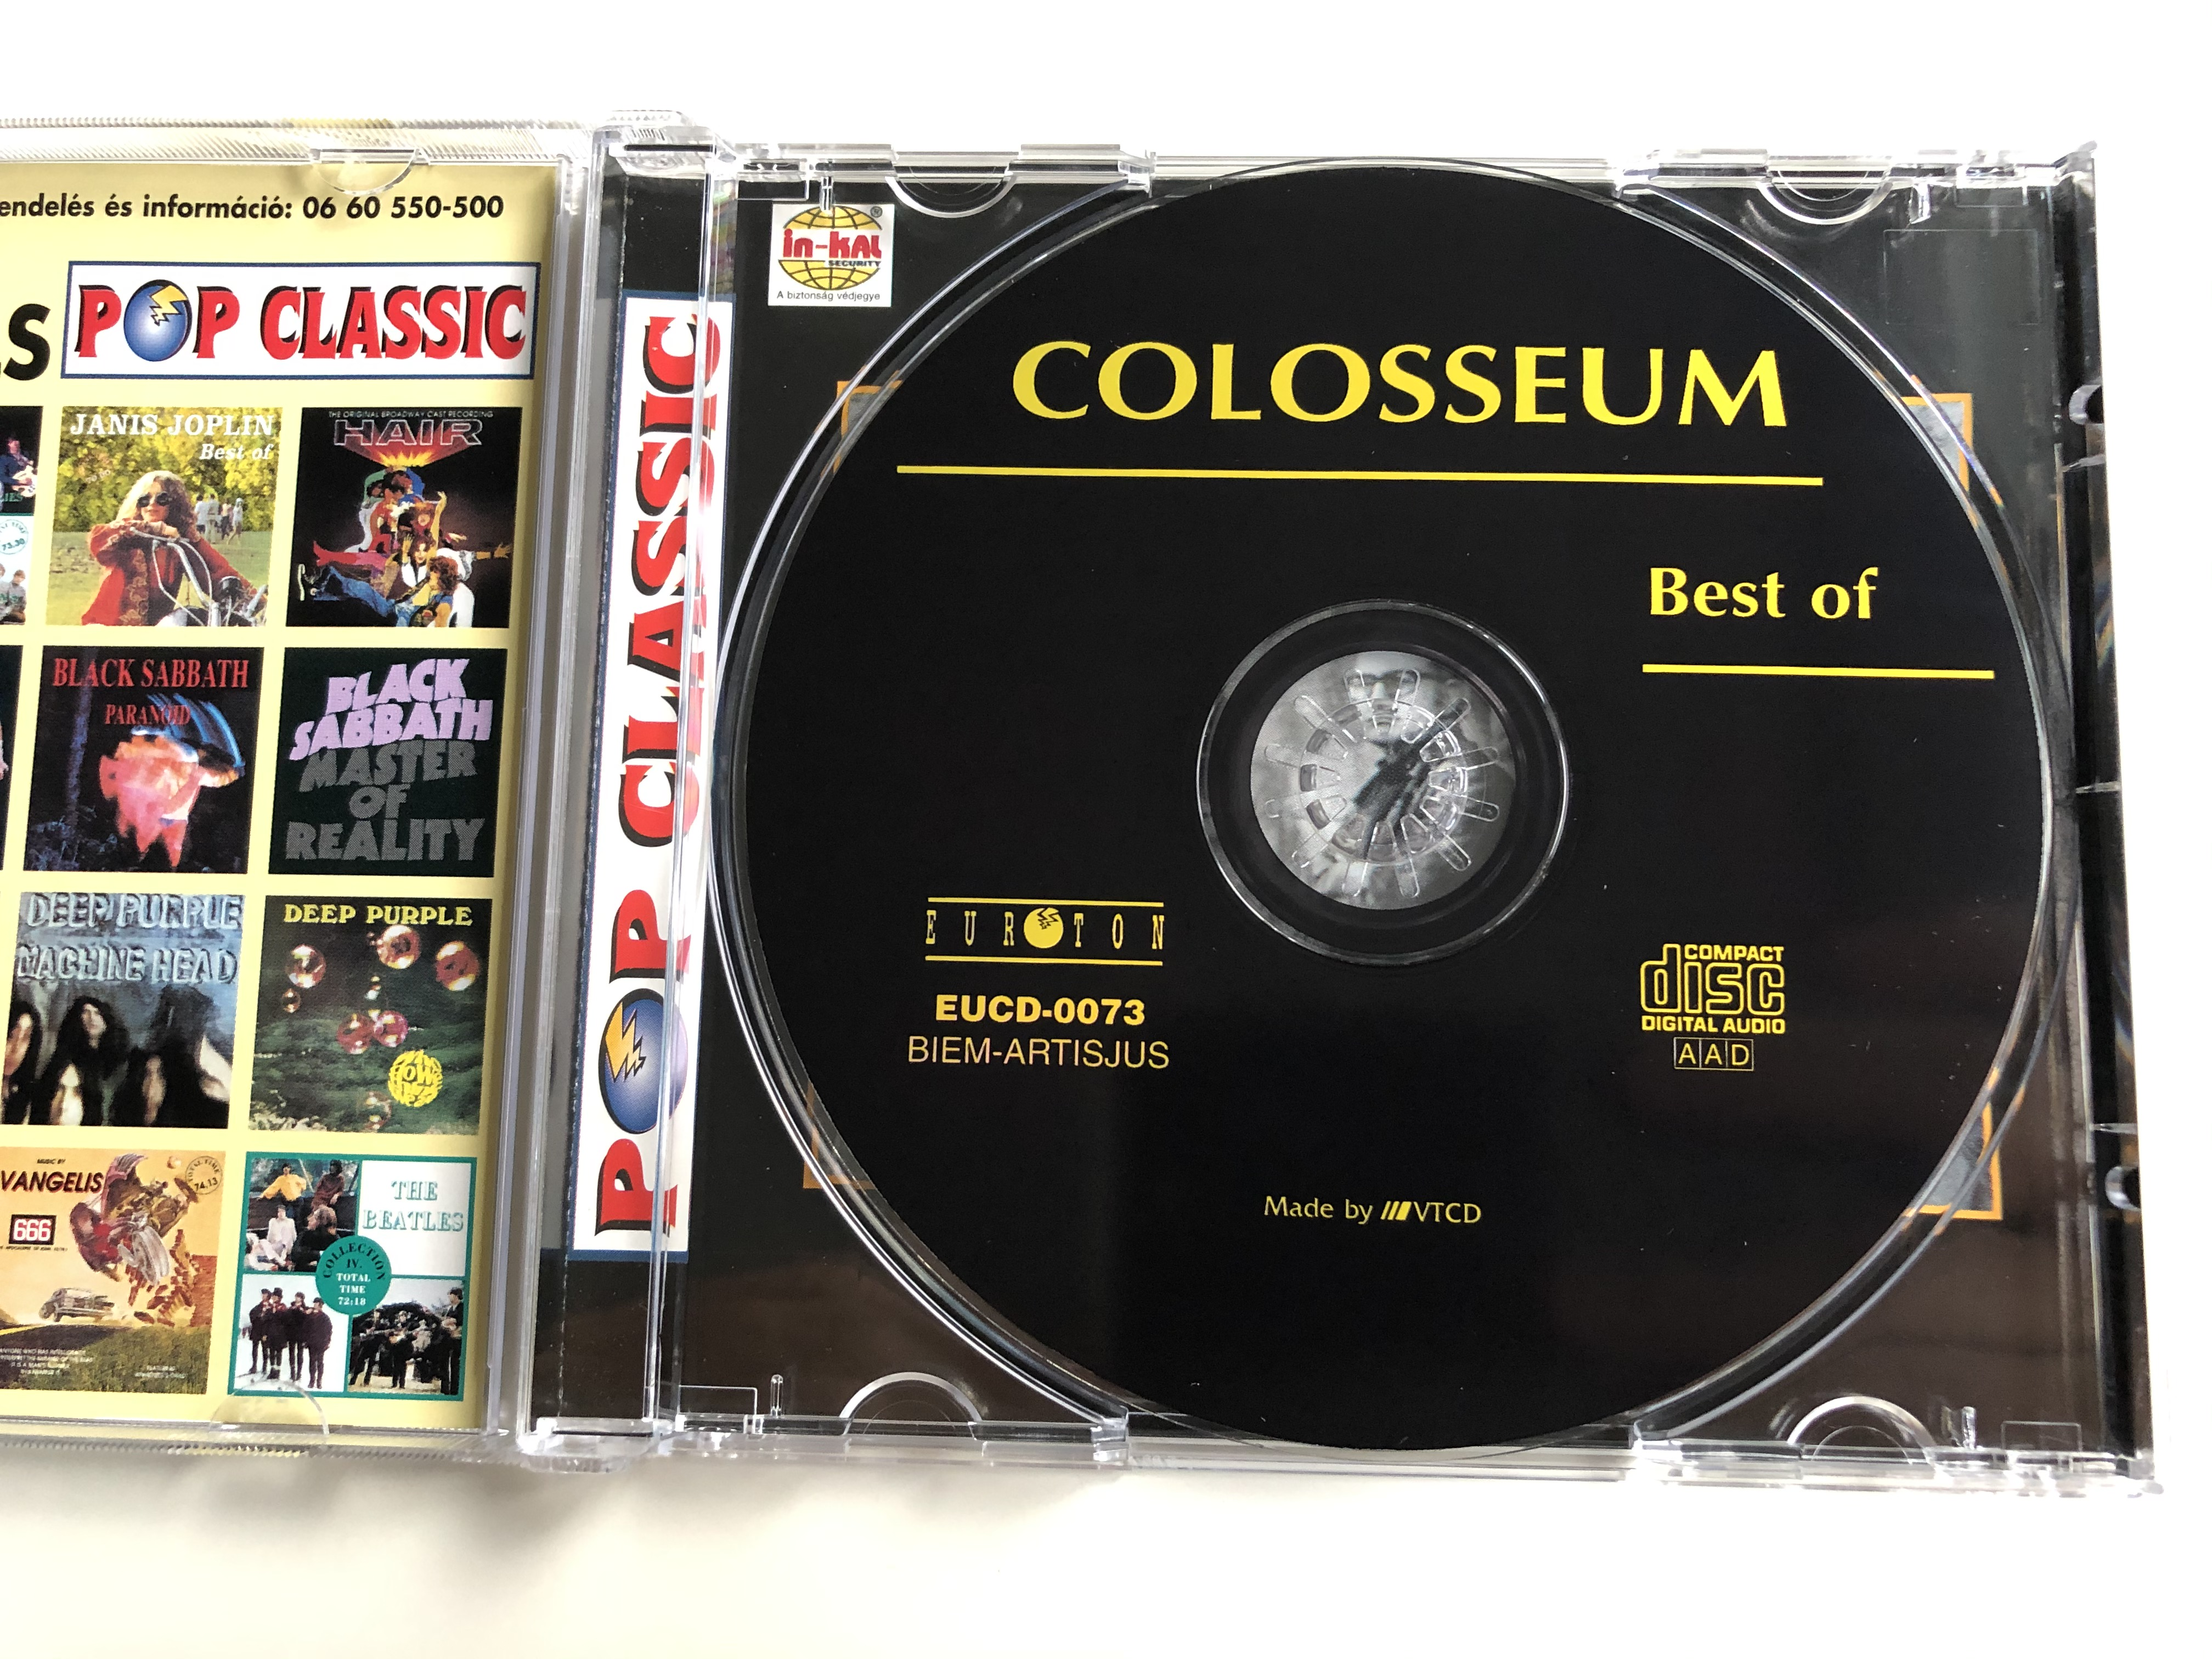 colosseum-best-of-total-time-72-50-pop-classic-euroton-audio-cd-eucd-0073-2-.jpg